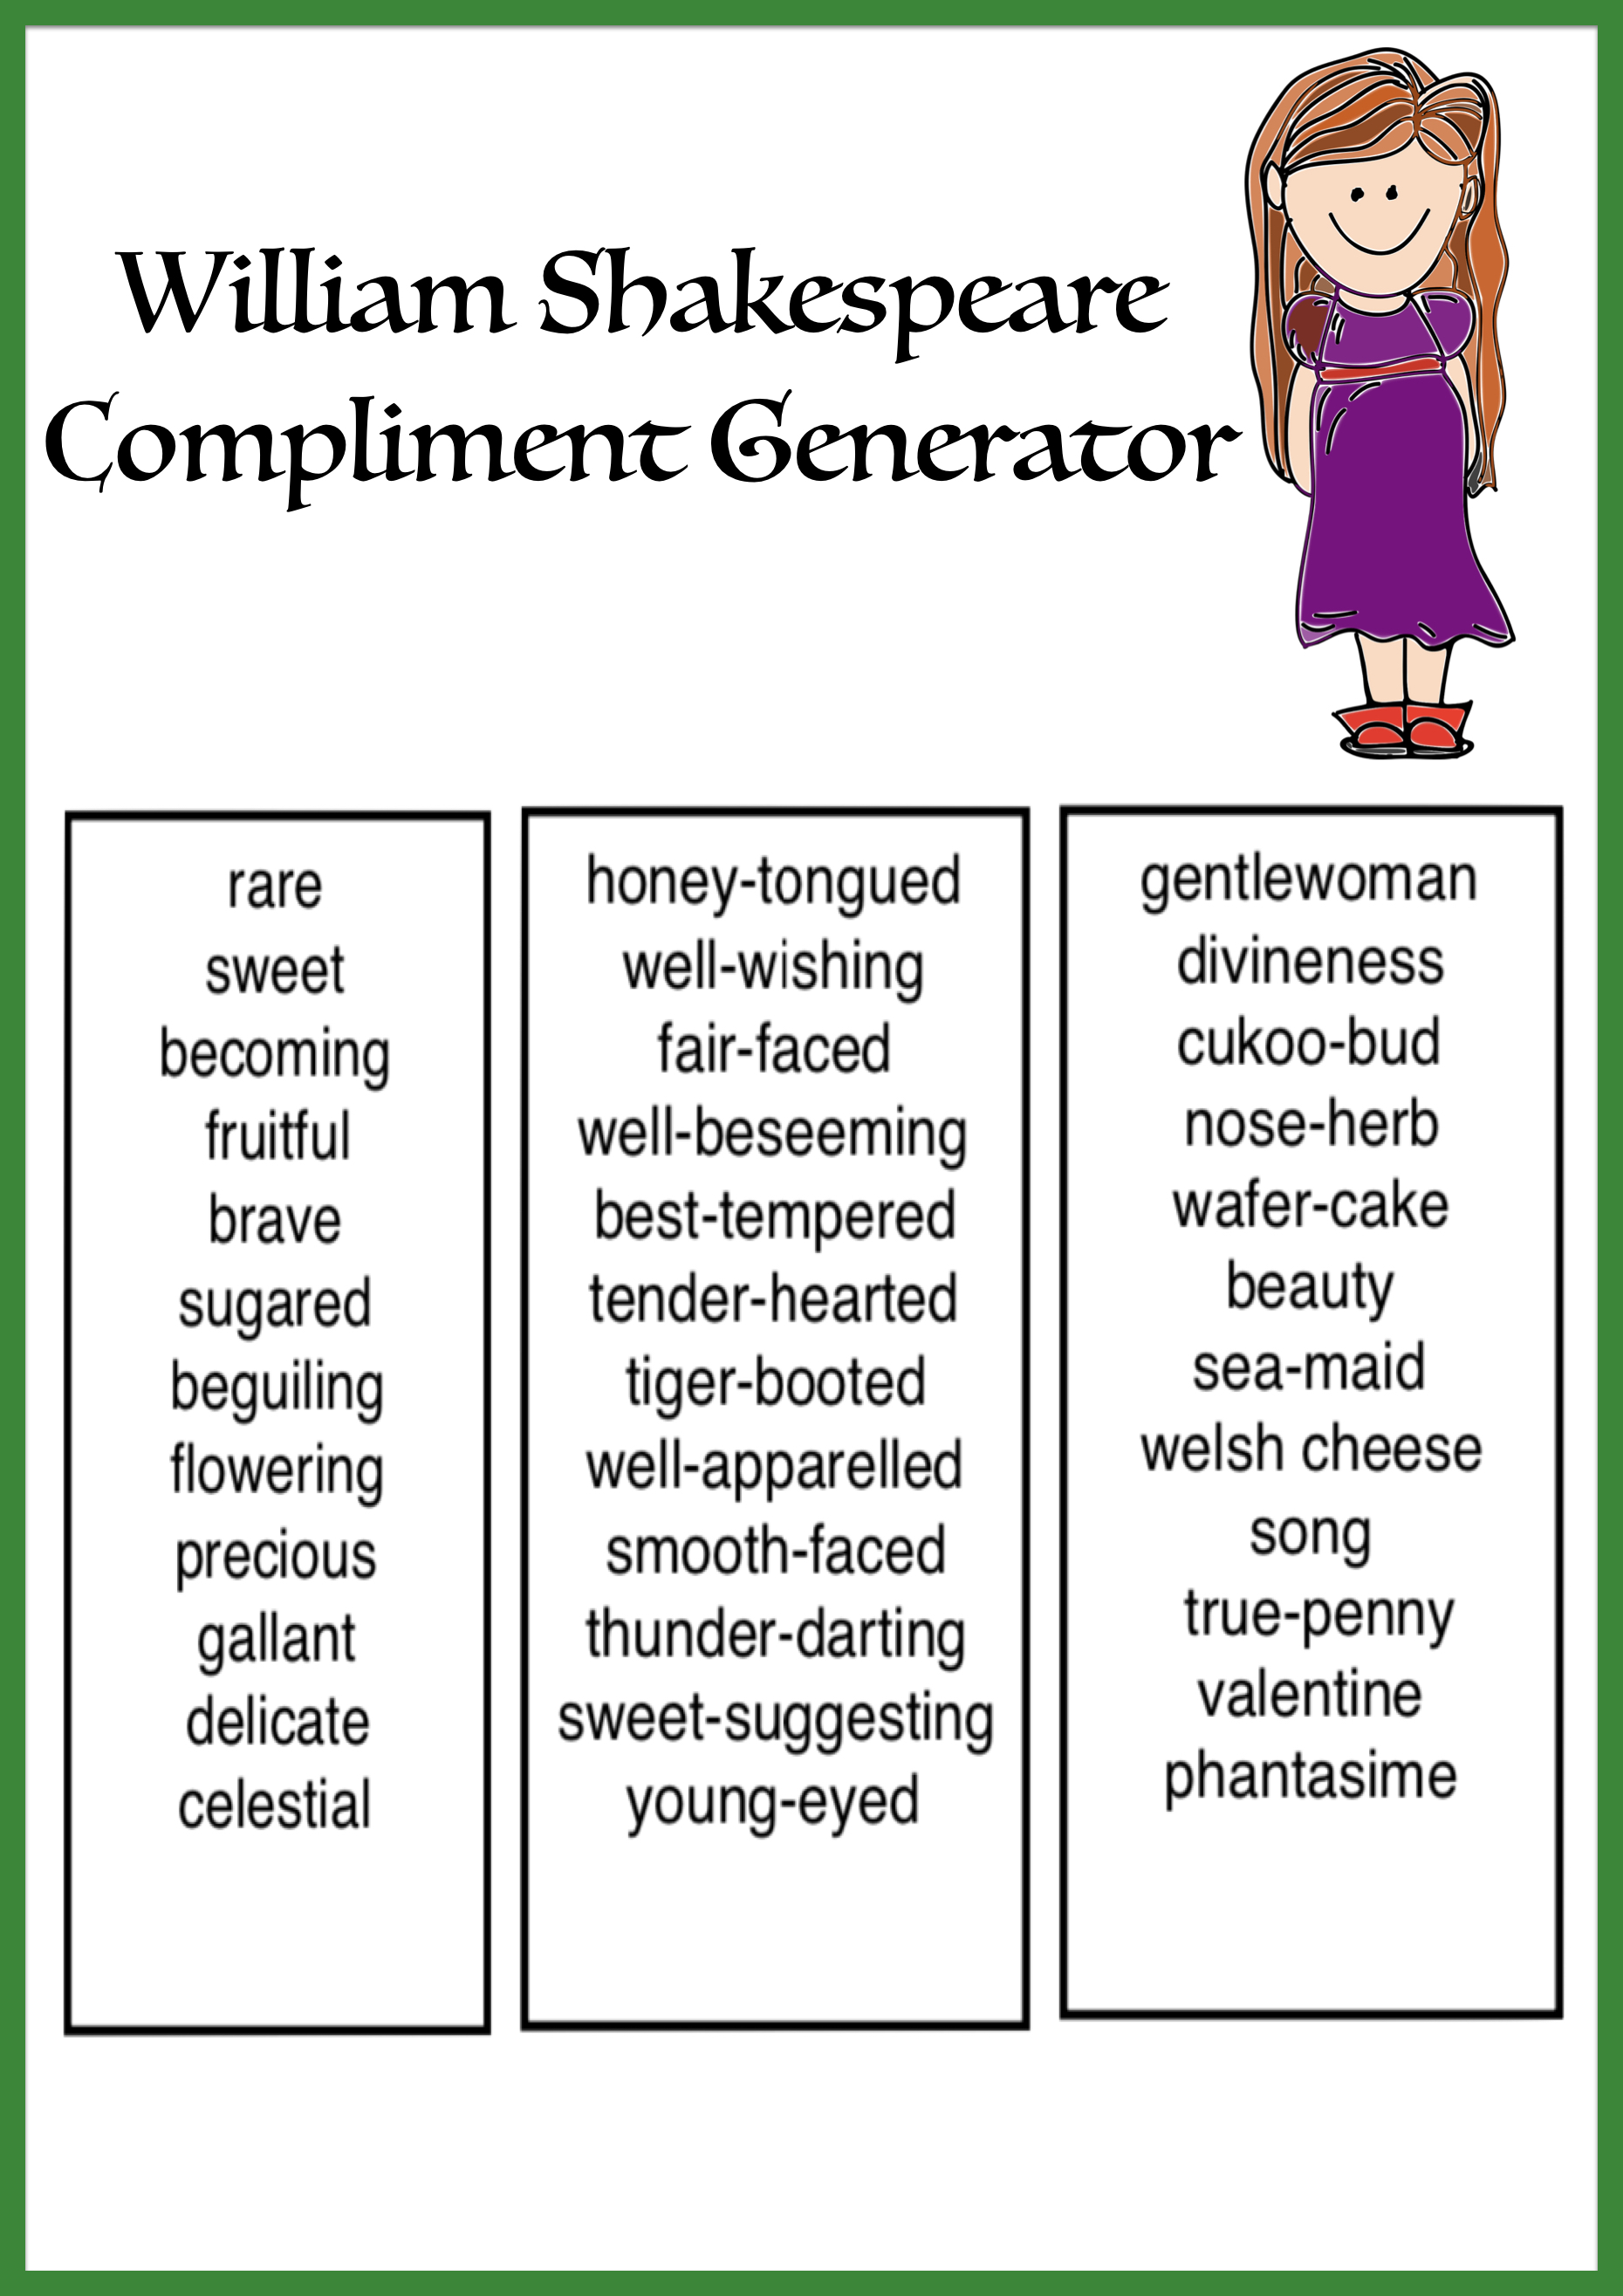 William Shakespeare Compliment Generator